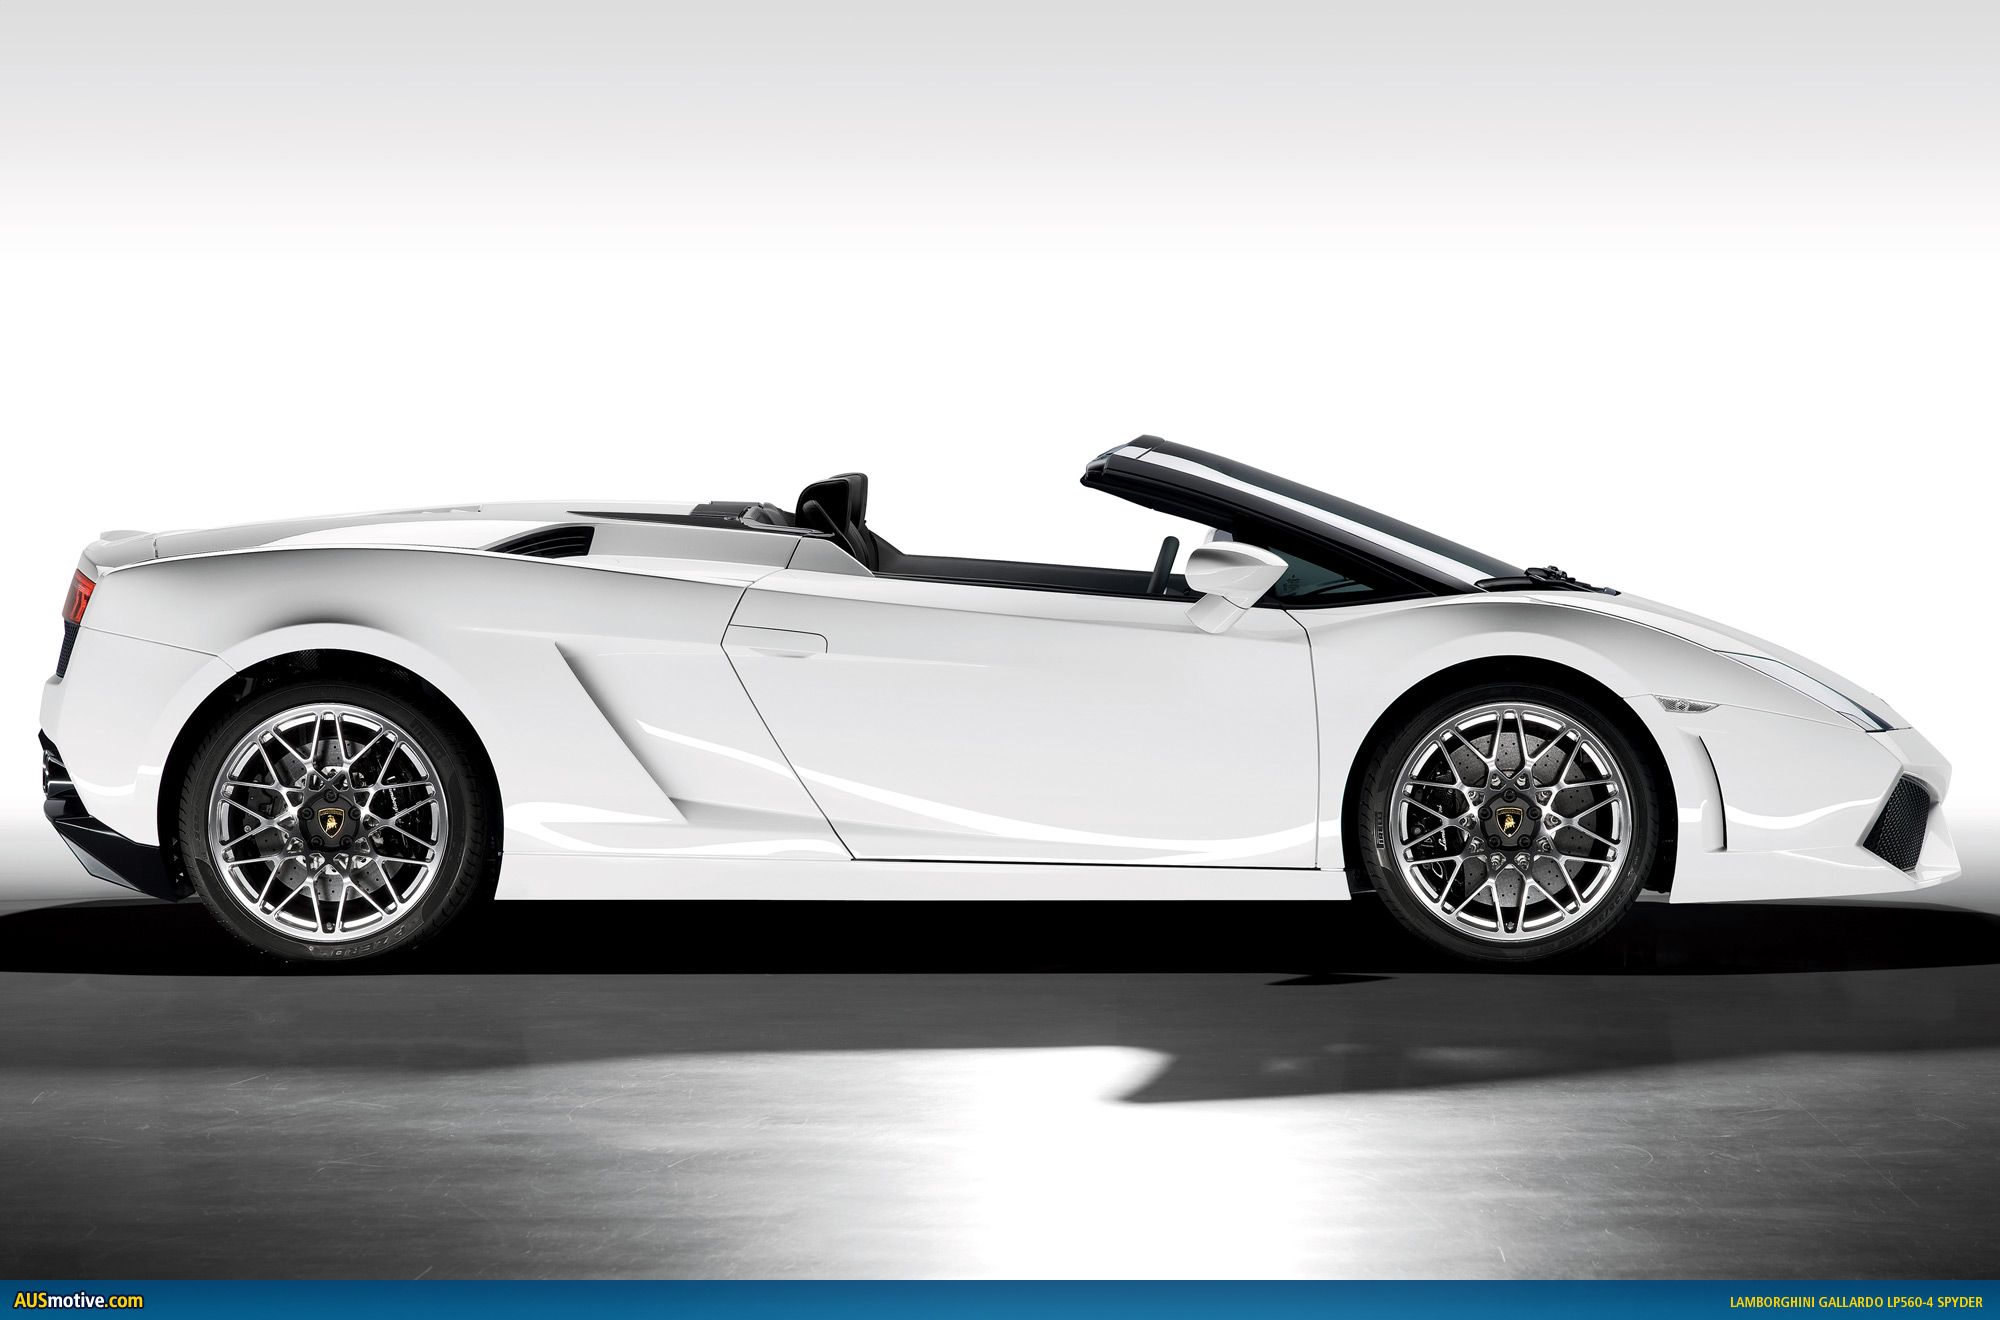 Gallardo LP560-4 Spyder.